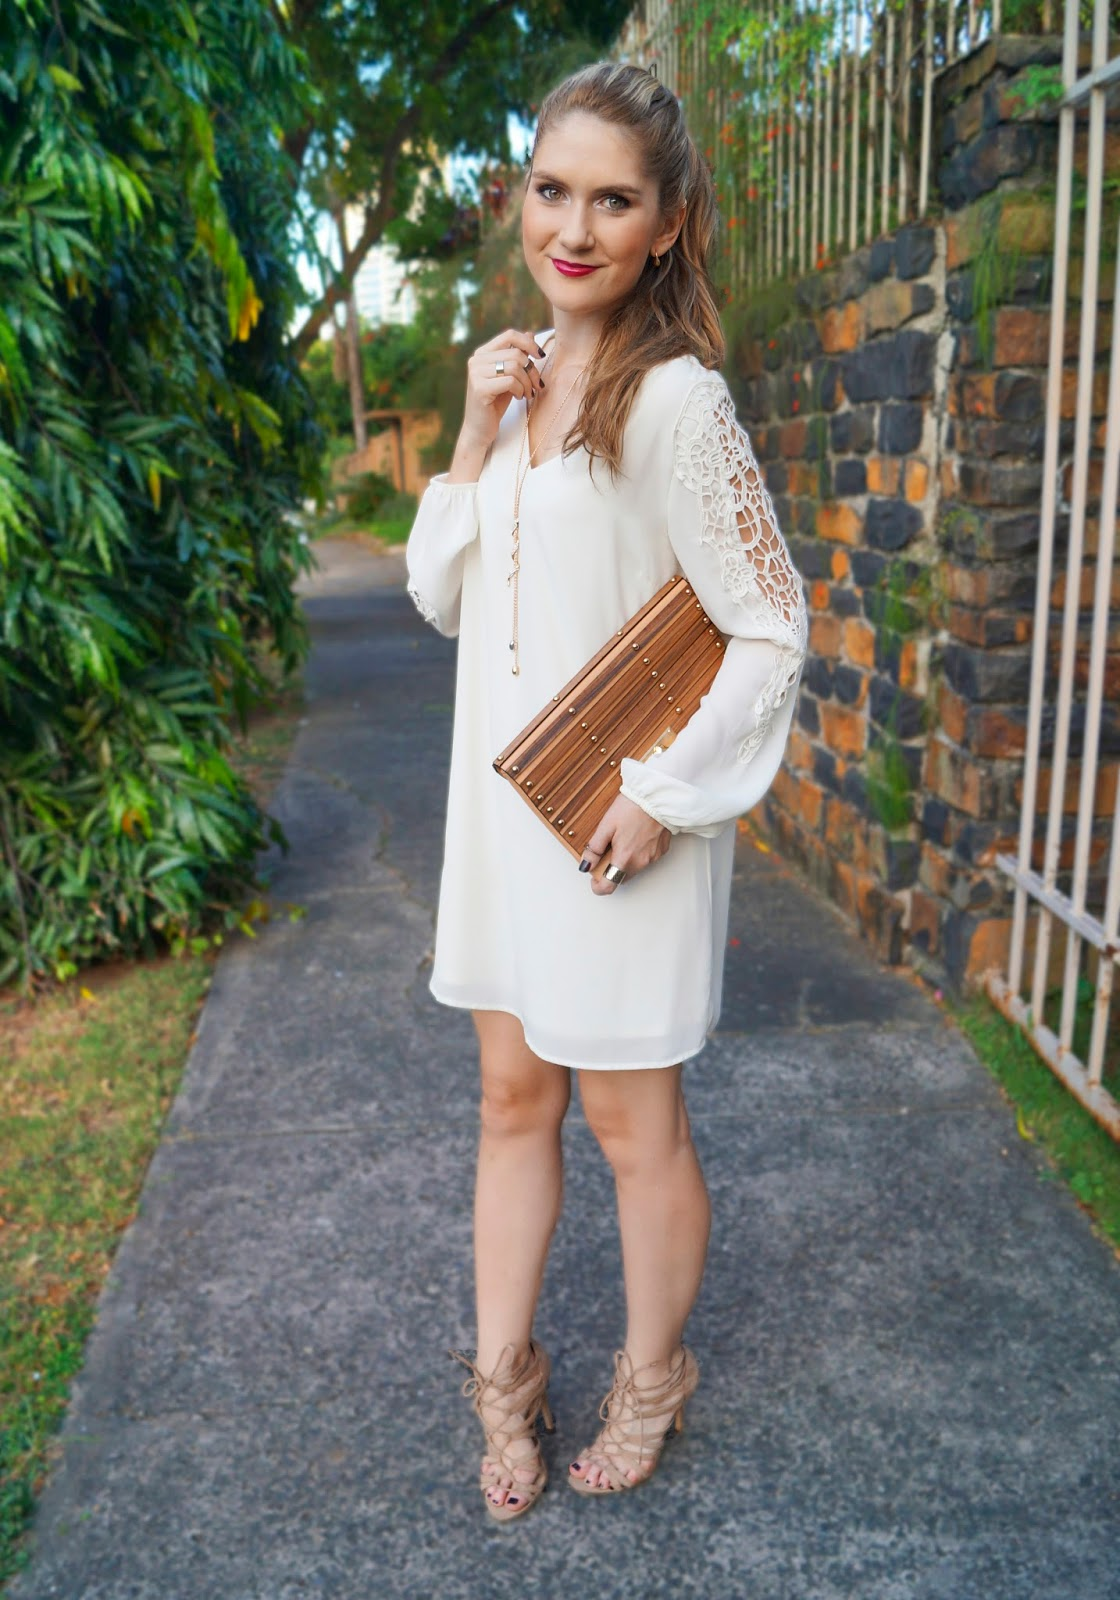 White Crochet dress from Charlotte Russe